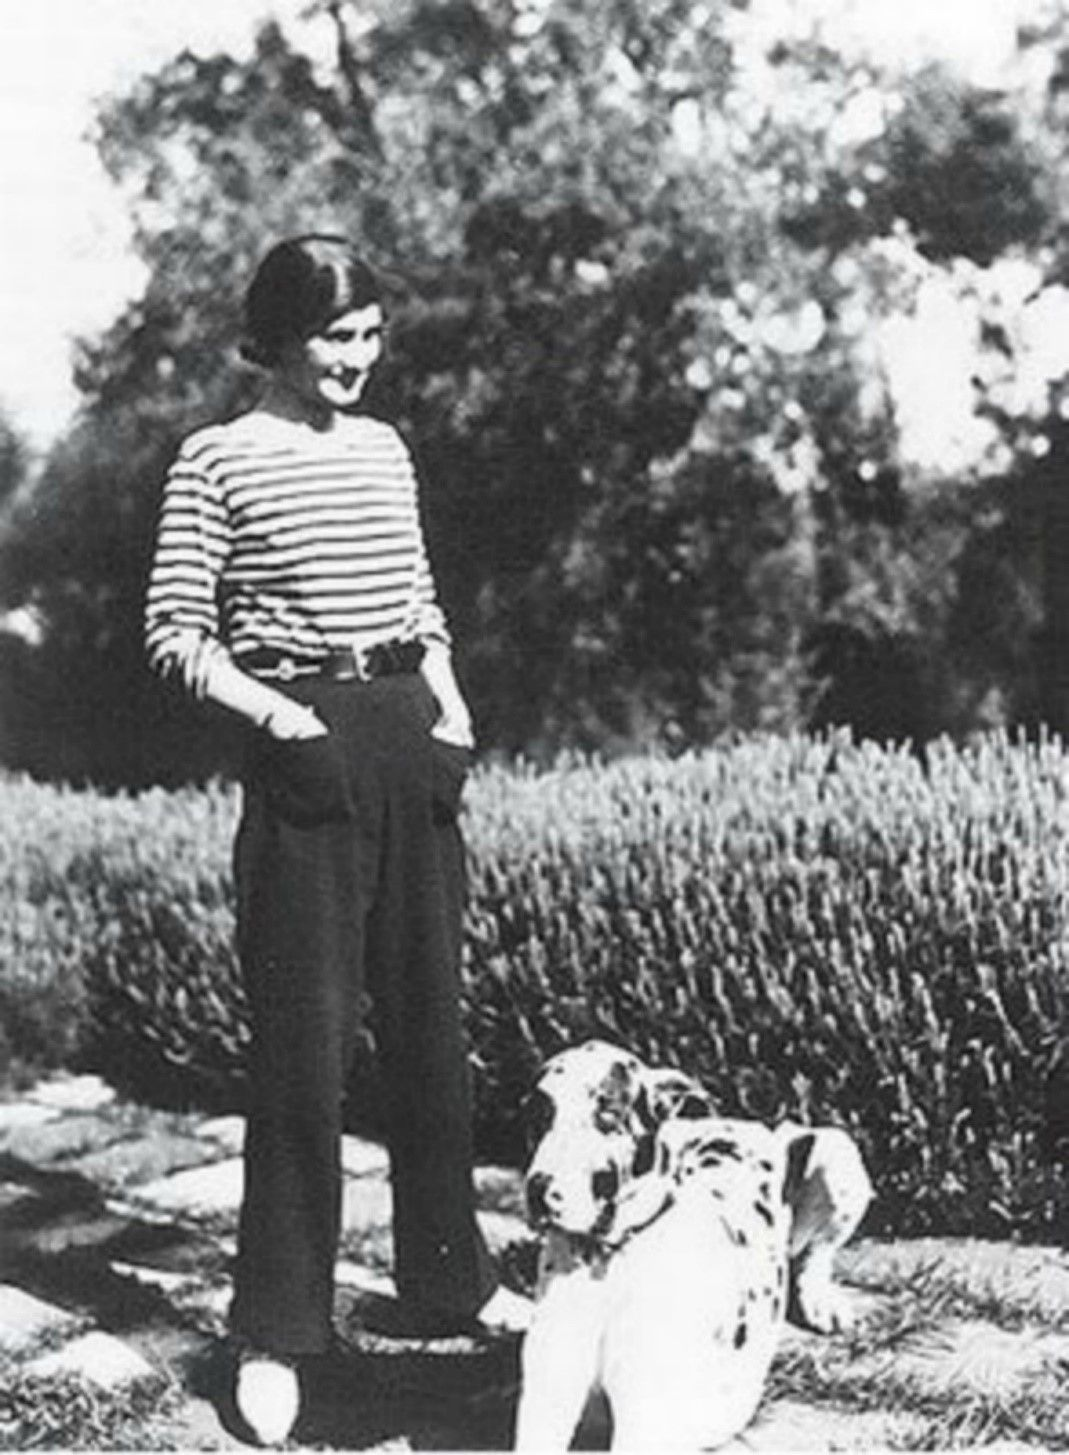 https://www.hungertv.com/wp-content/uploads/2015/08/Coco-Chanel-Trousers.jpg